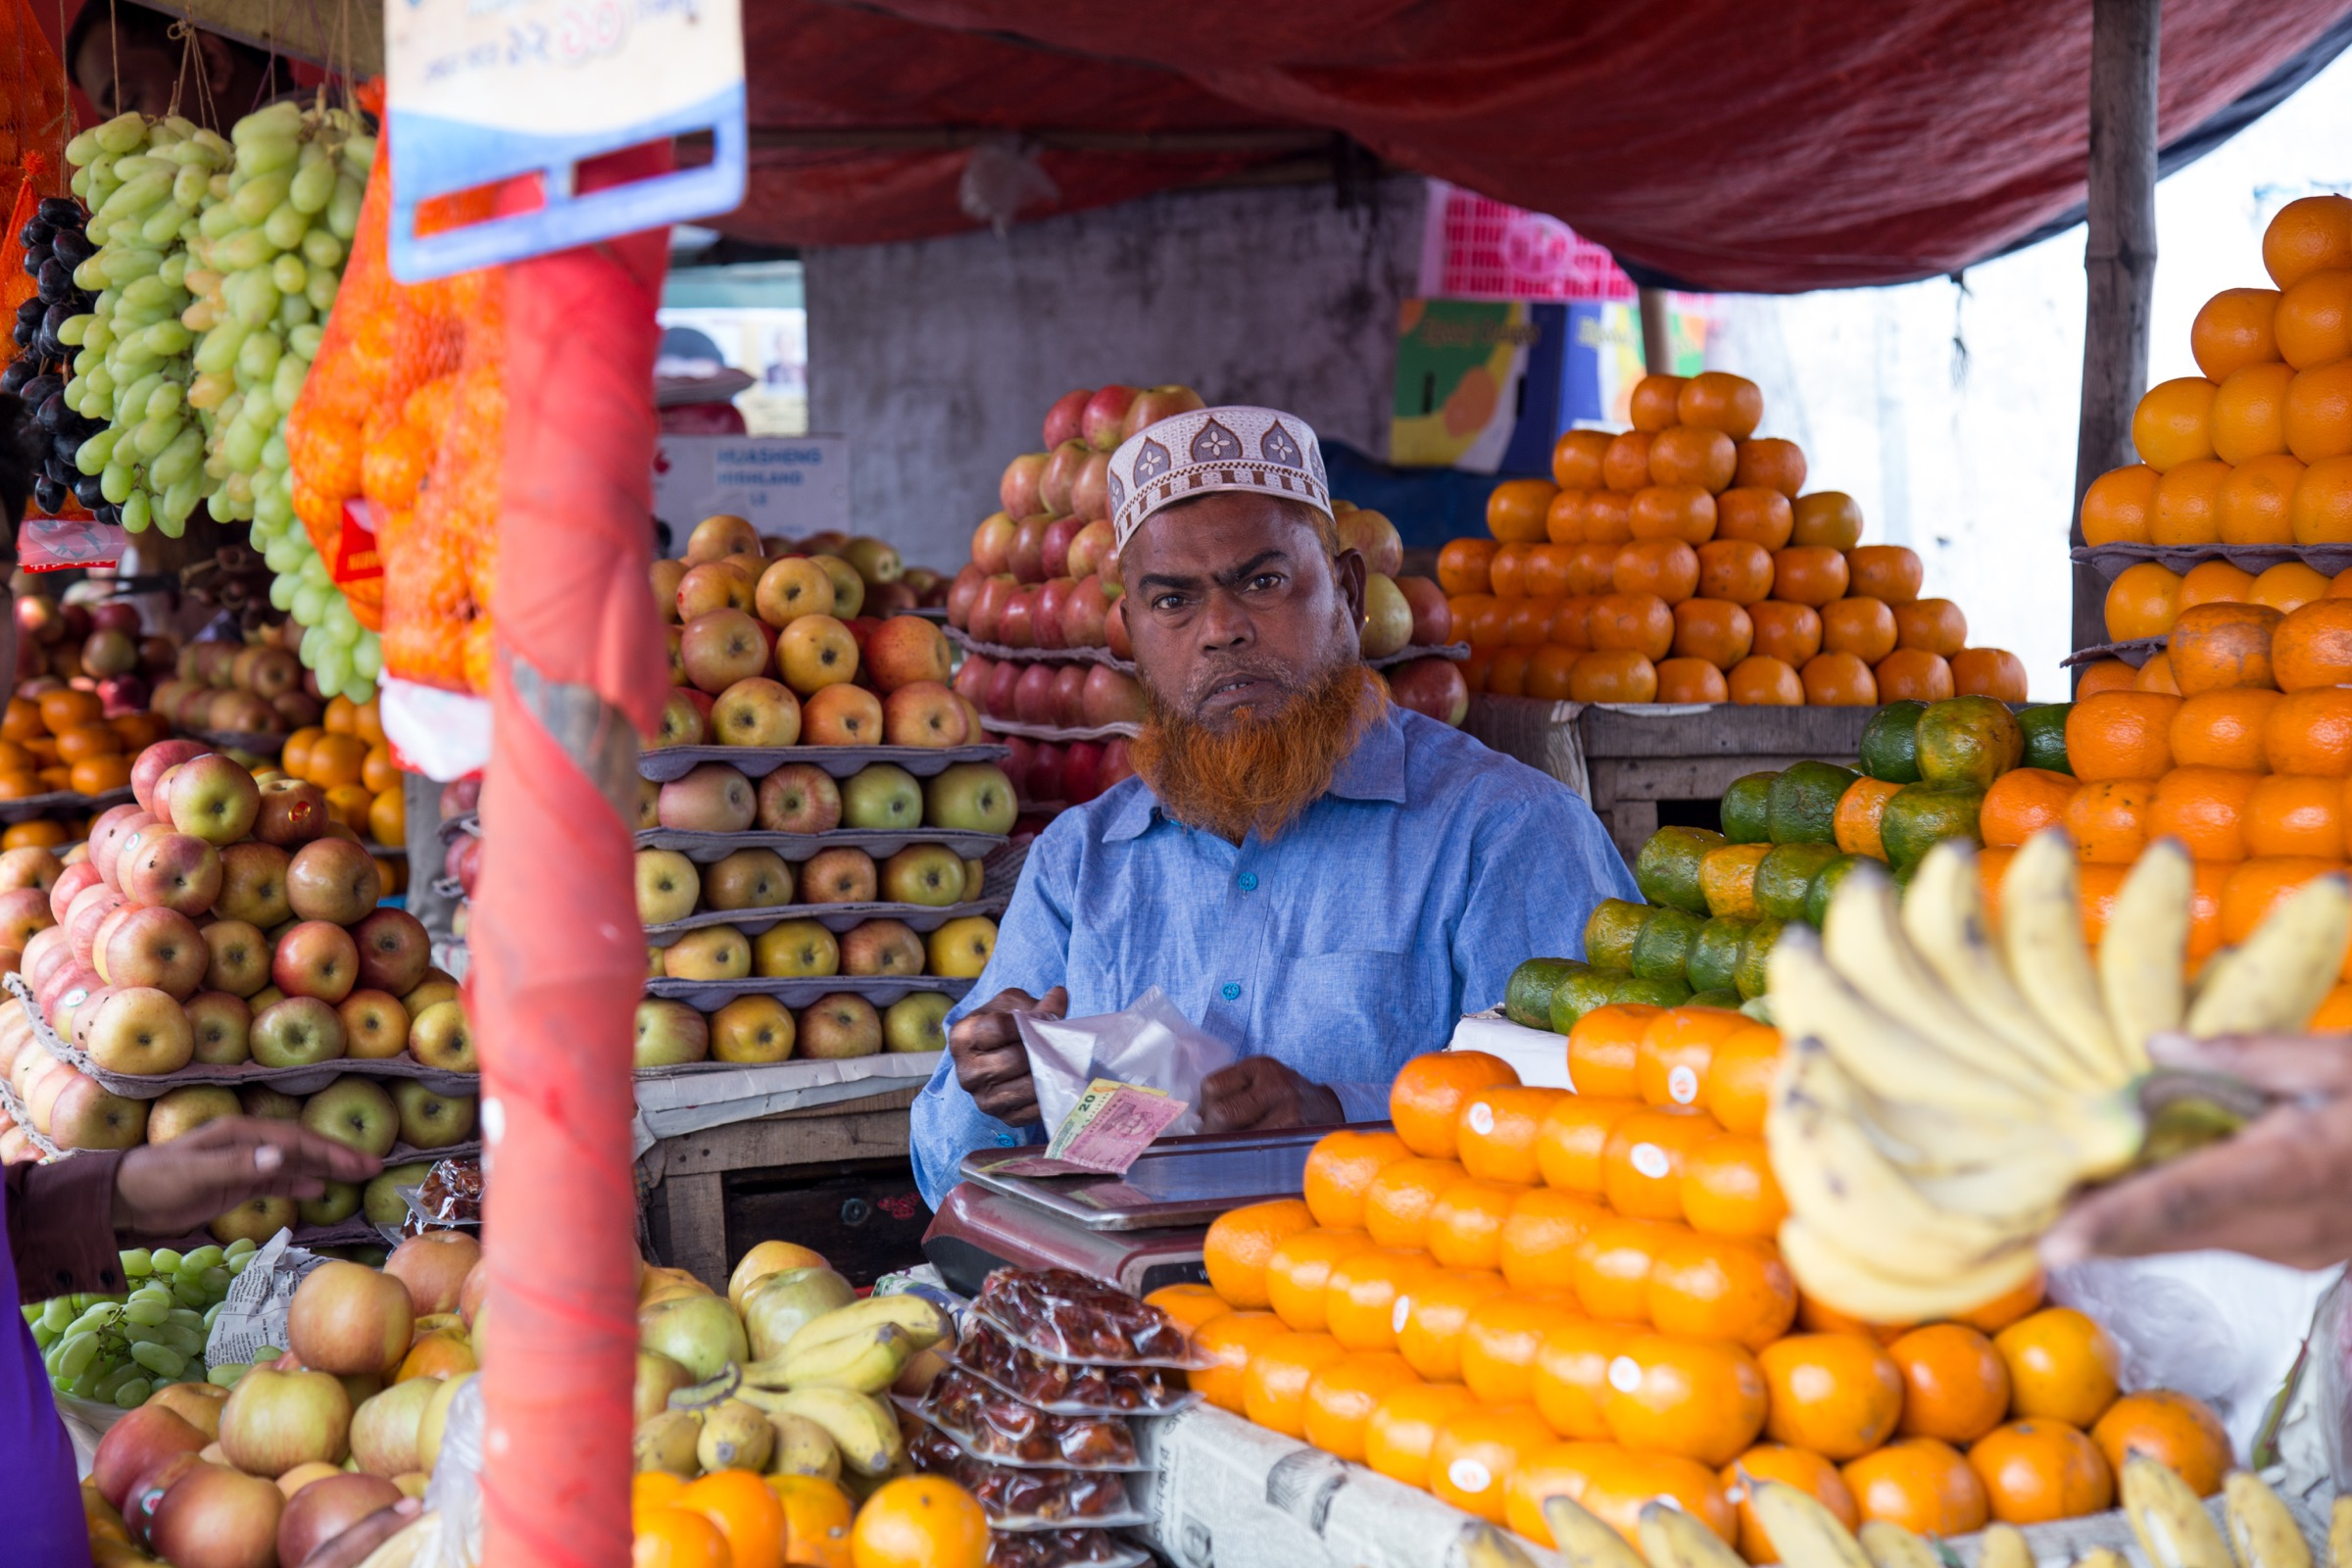 For a city most people have never heard of, northern Bangladesh's Rangpur City is a bustling place that wakes up early each morning to offer fresh fruit, mobile phones, and just about anything else you could desire. Photograph by Steven Bedard